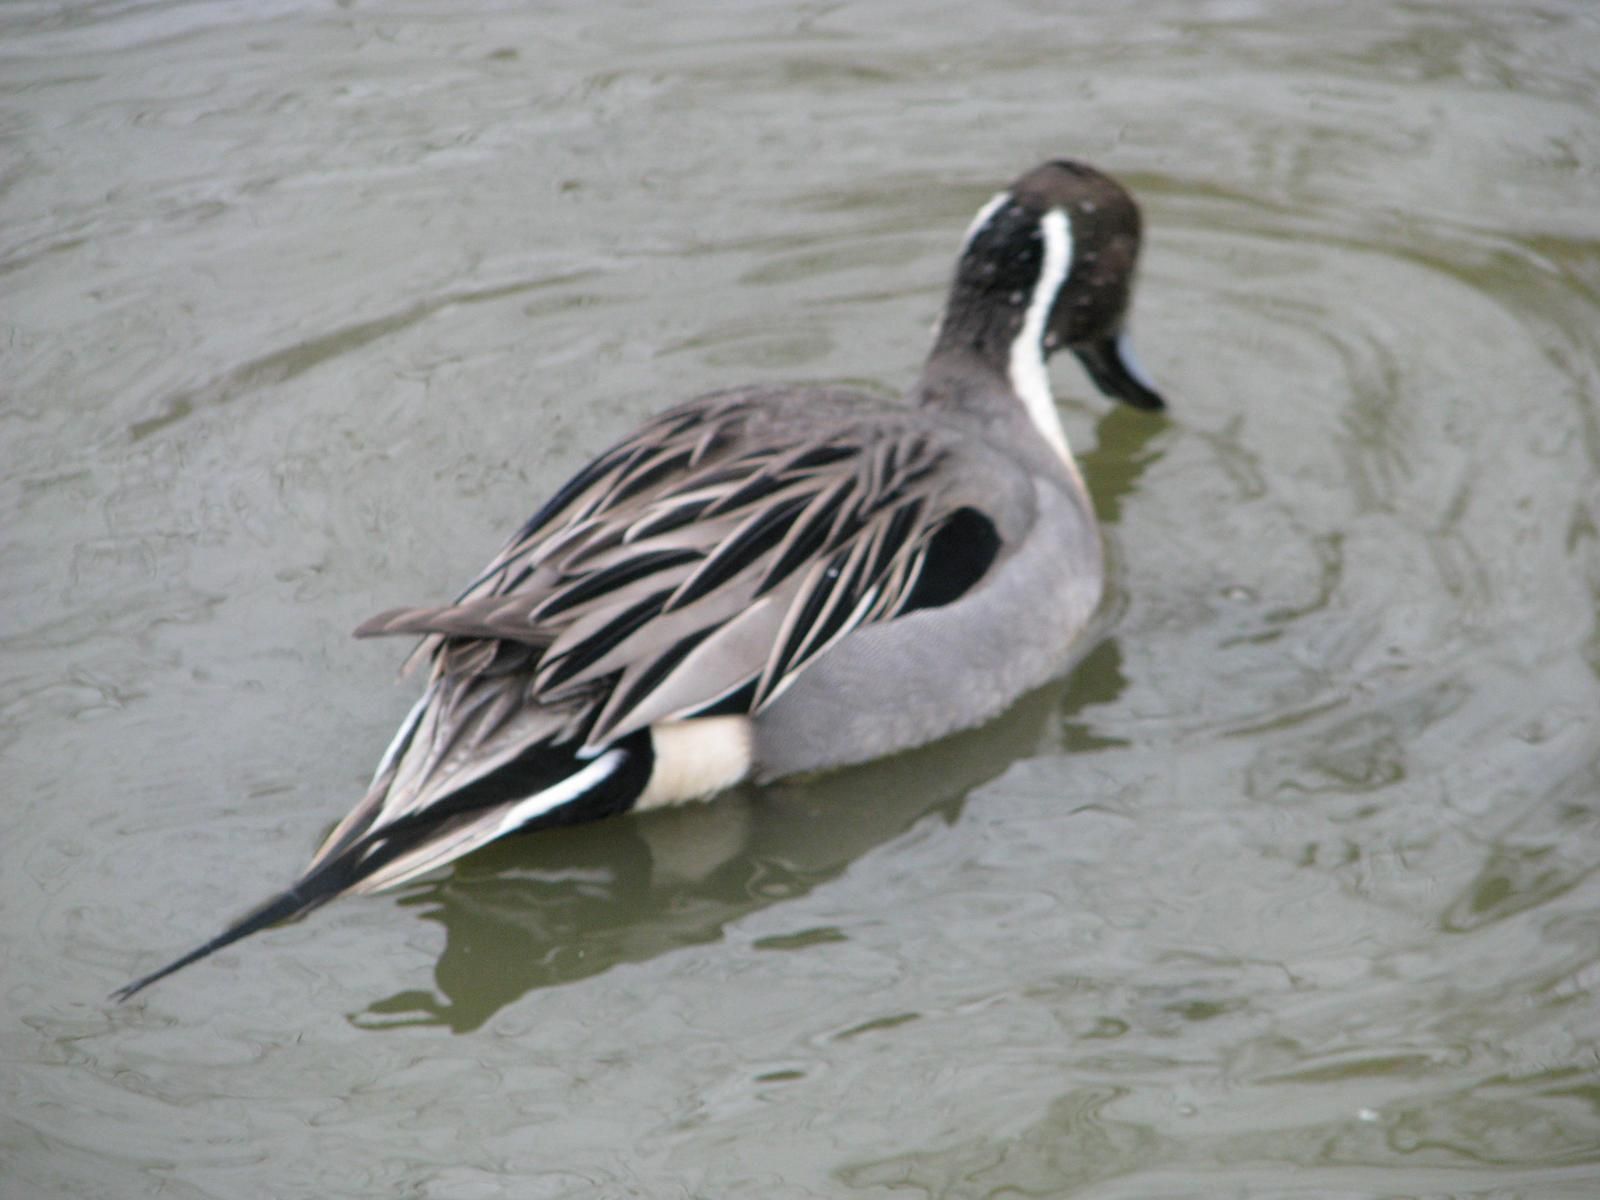 Northern Pintail Photo by Ted Goshulak